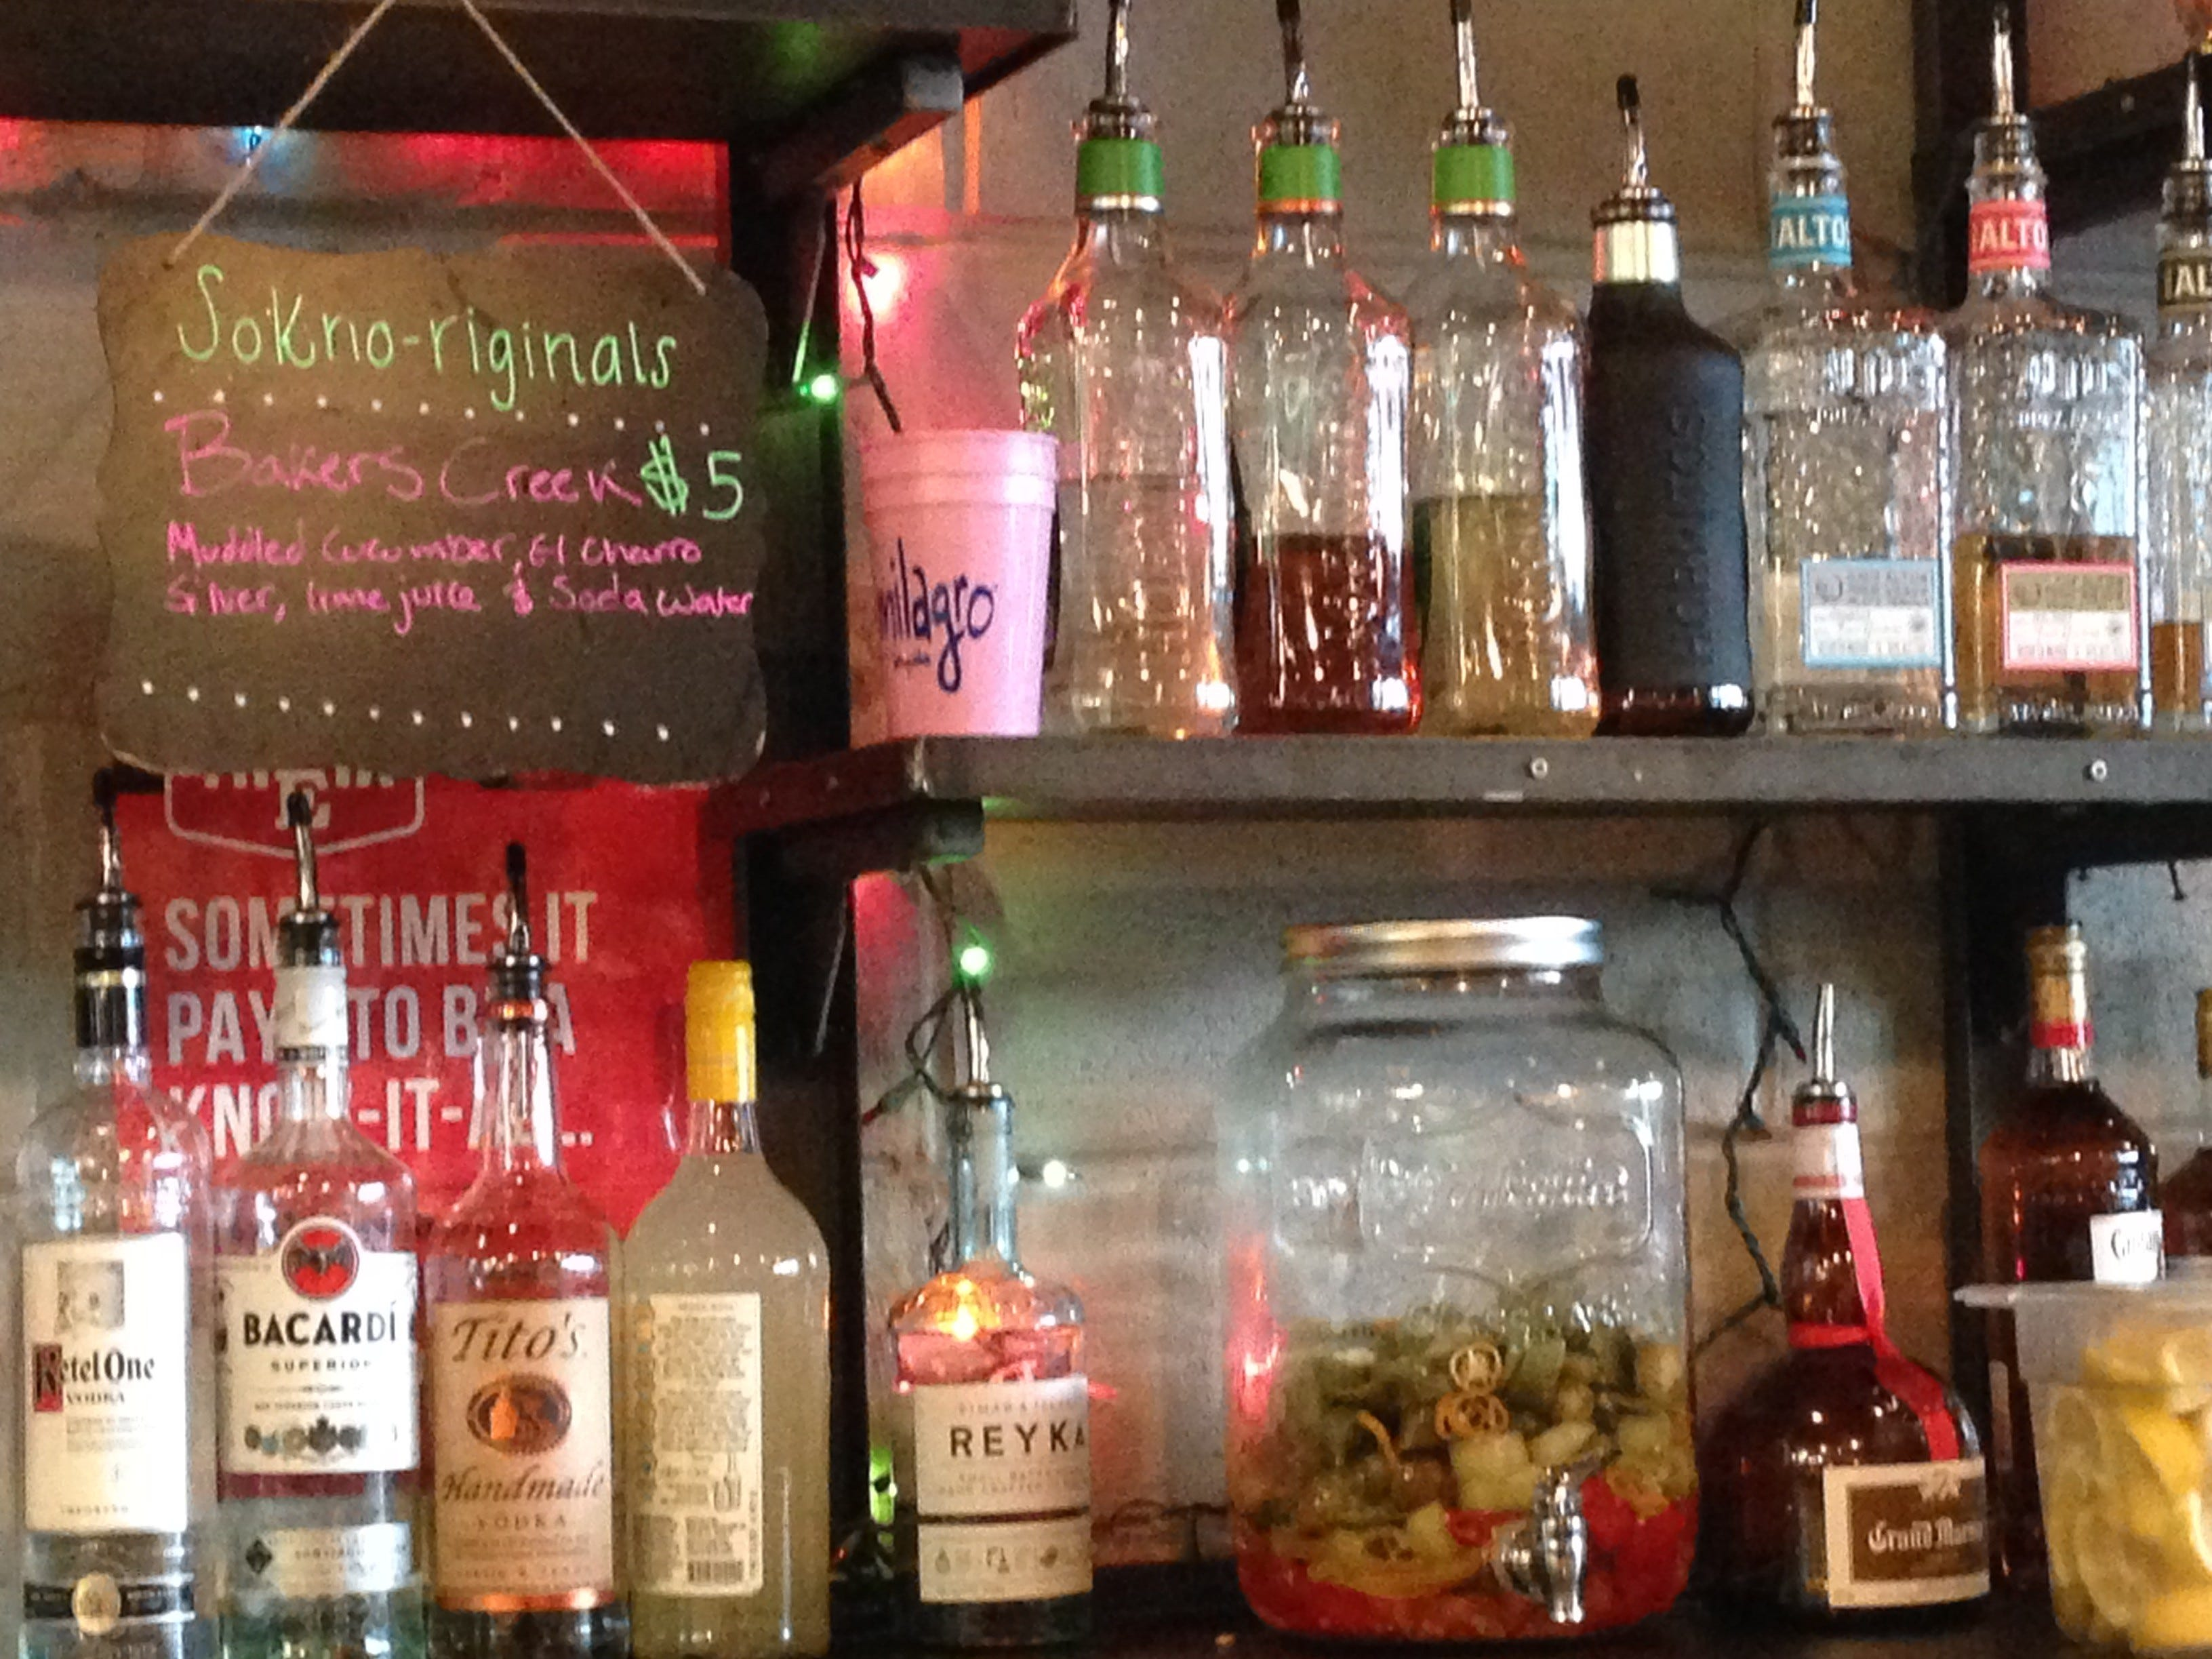 The large glass jar of infused pepper tequila is placed in the middle of the tequila section at SoKno Taco Cantina.